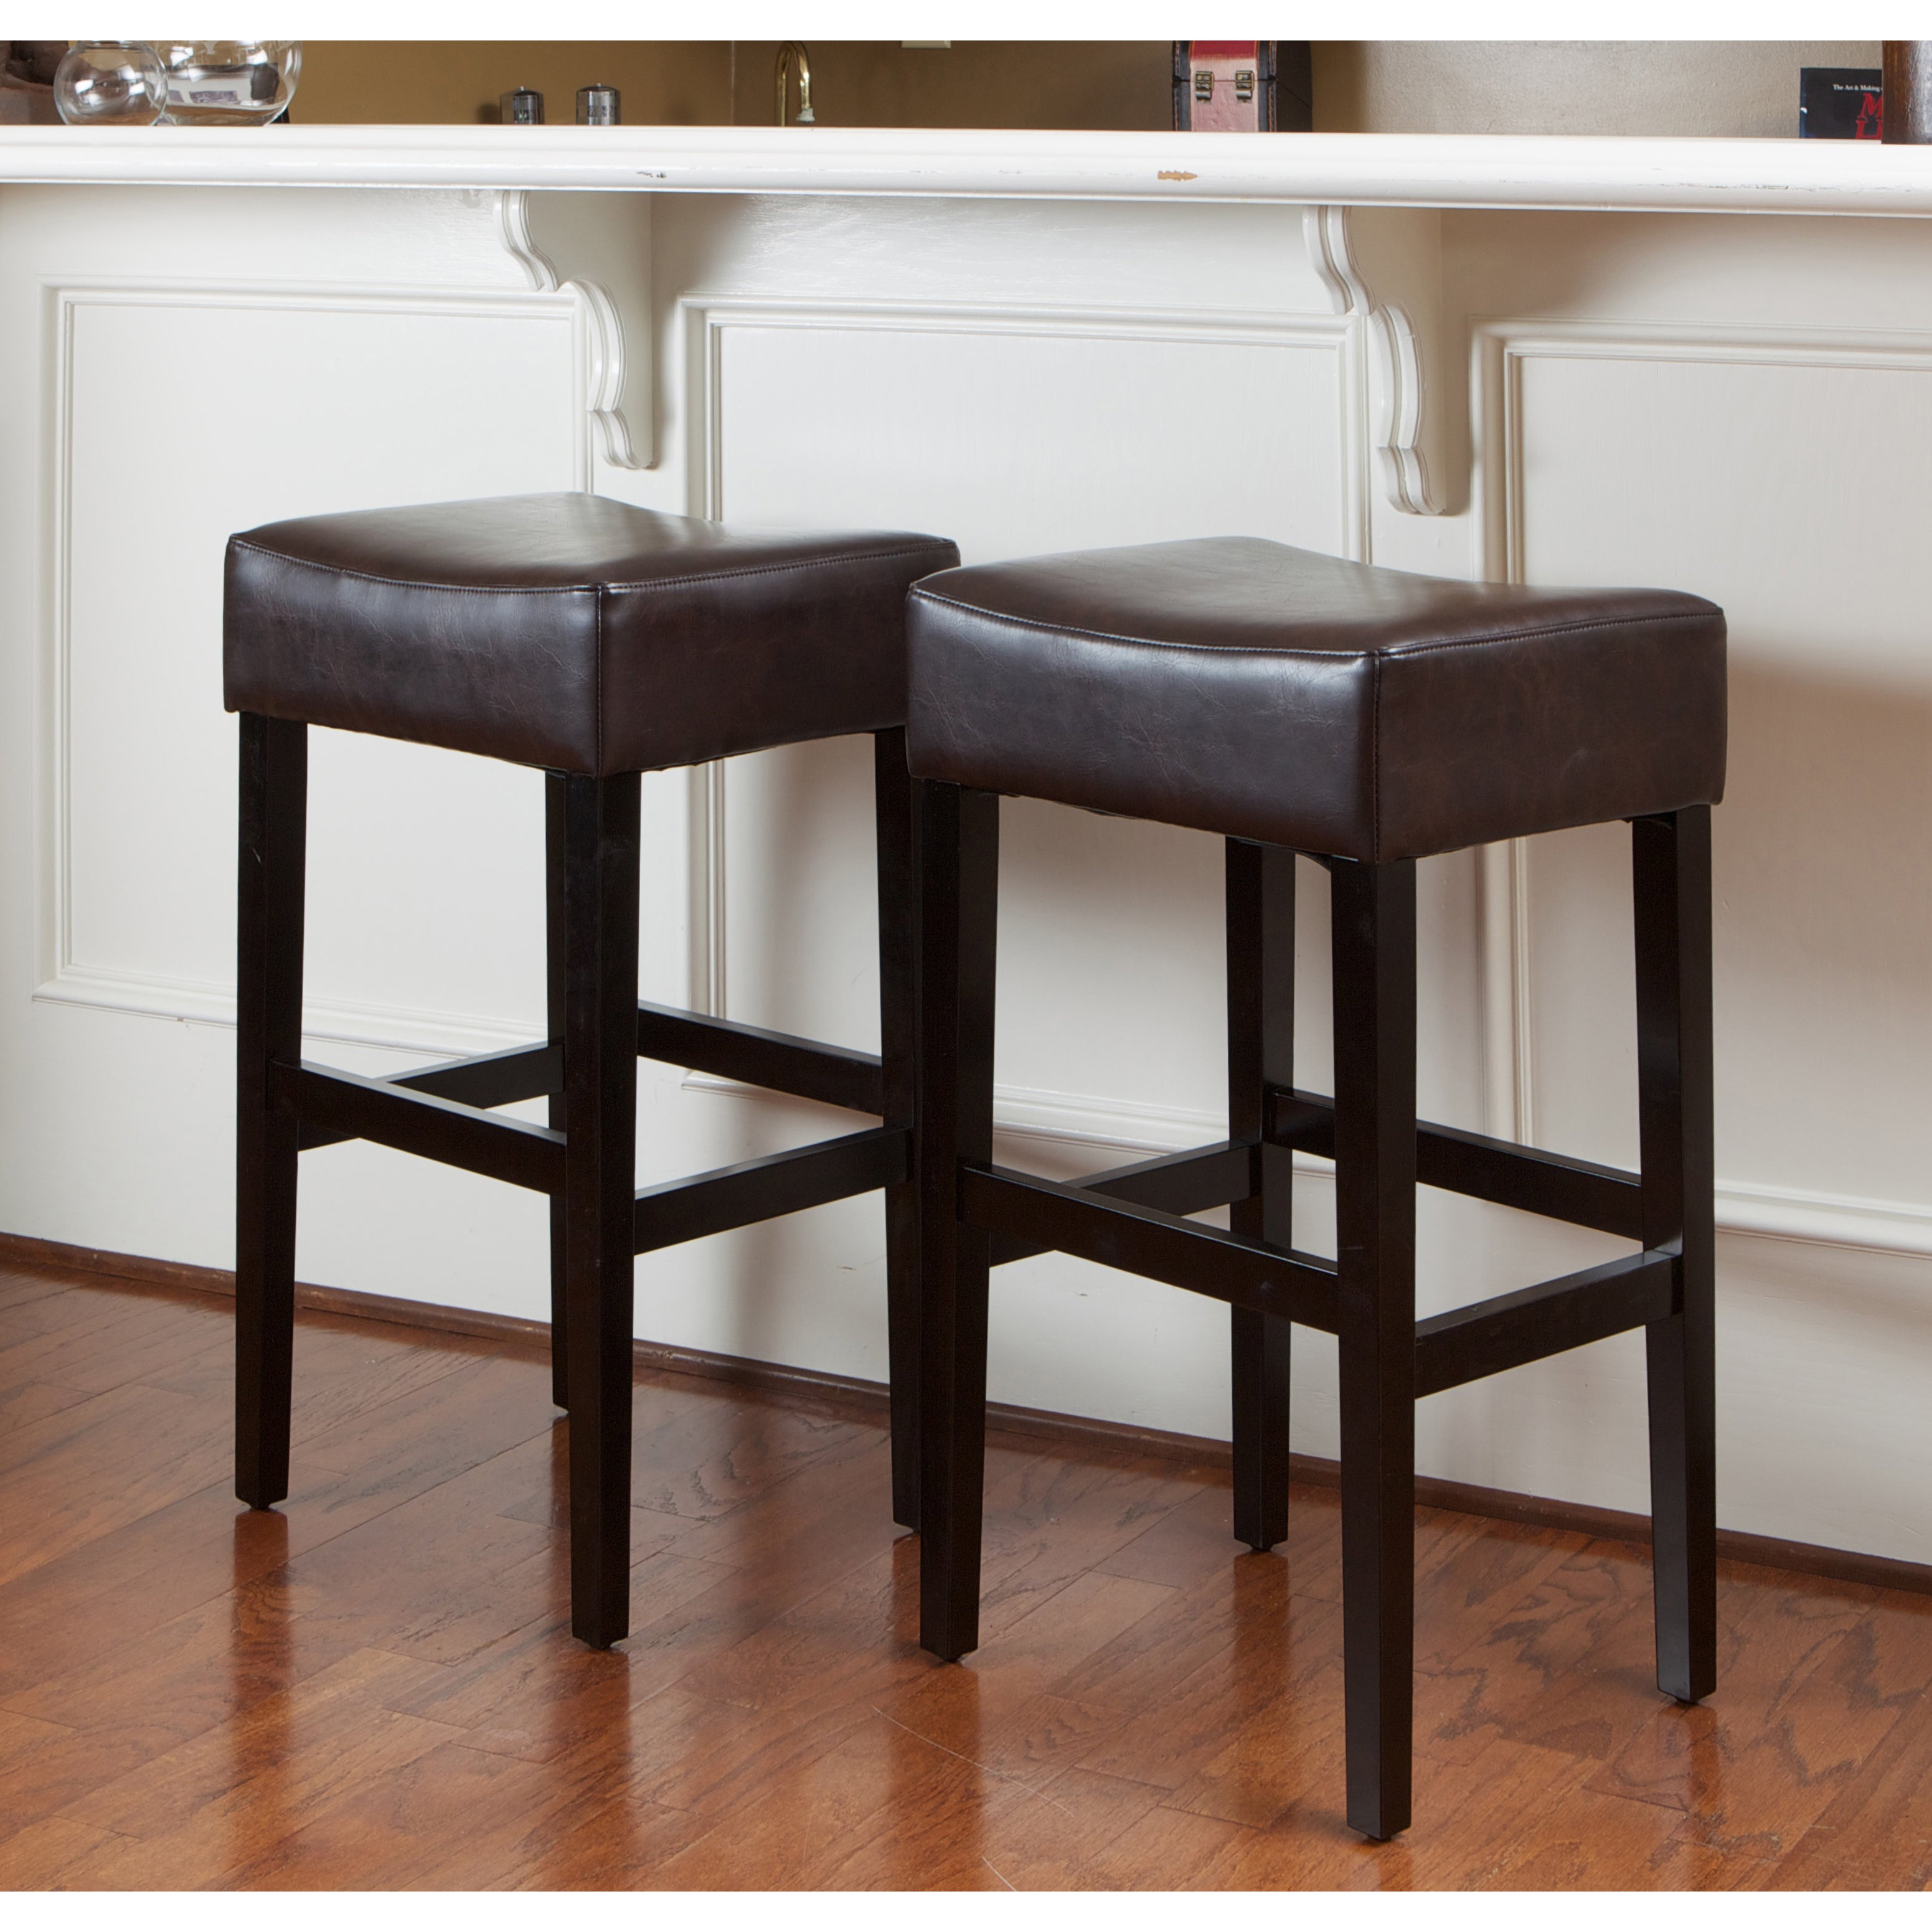 Shop Lopez 30 Inch Brown Leather Backless Bar Stools Set Of 2 By